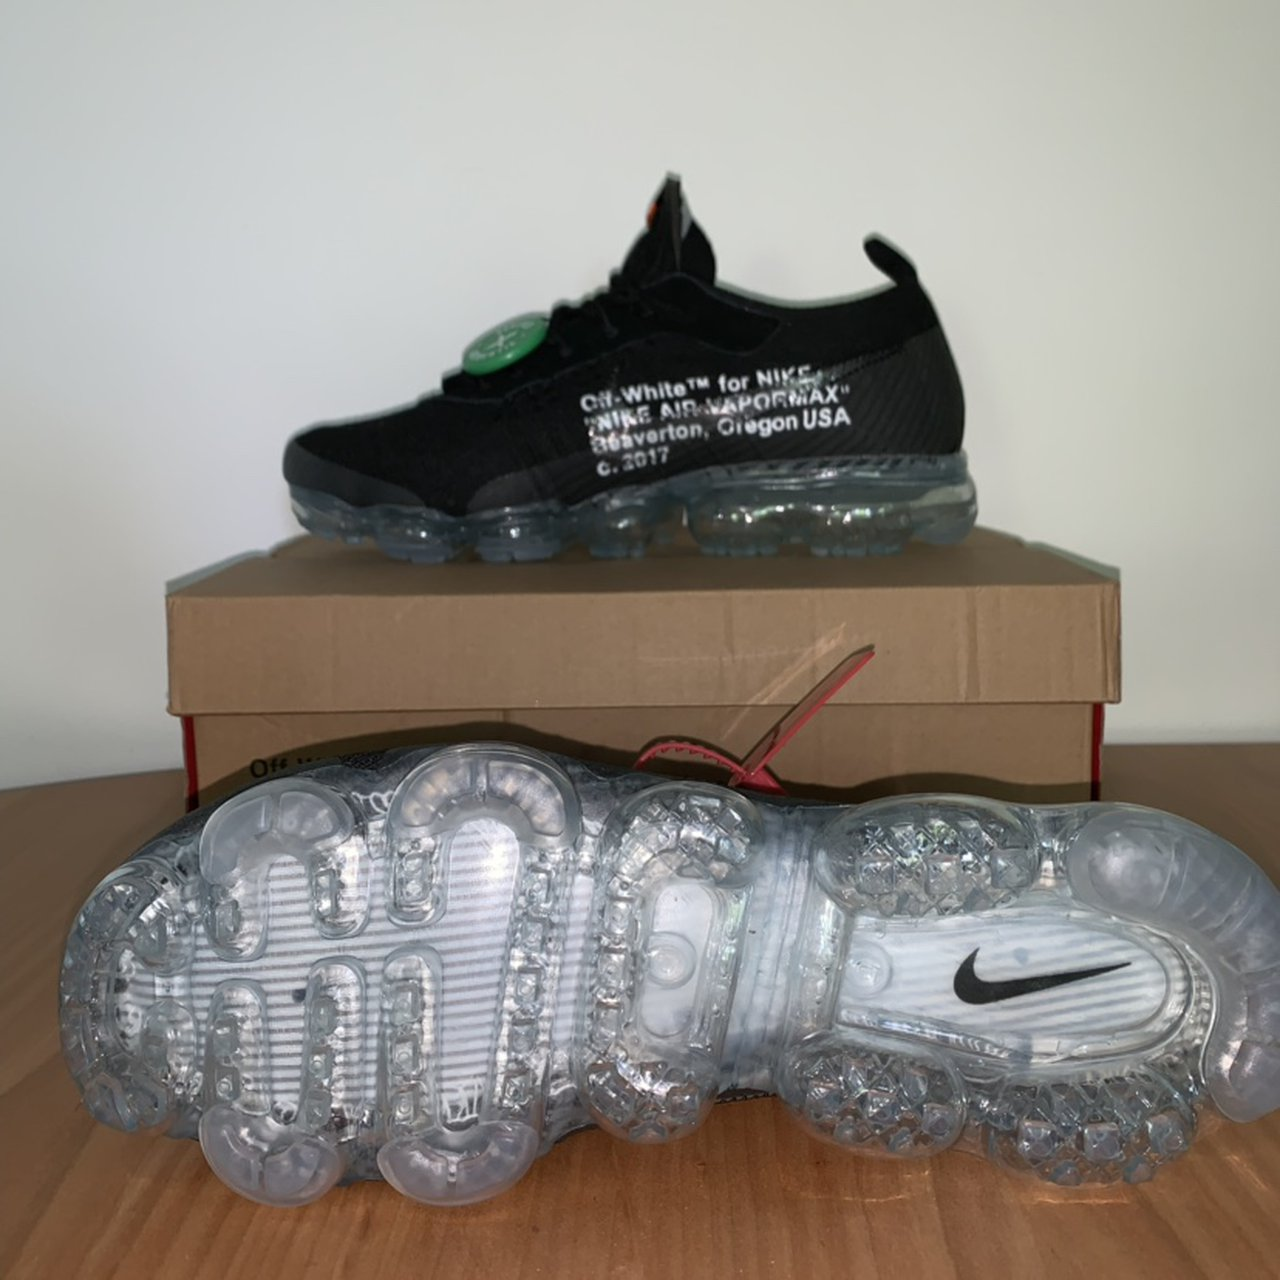 SOLD🔌 Nike Air Vapormax x Off-White